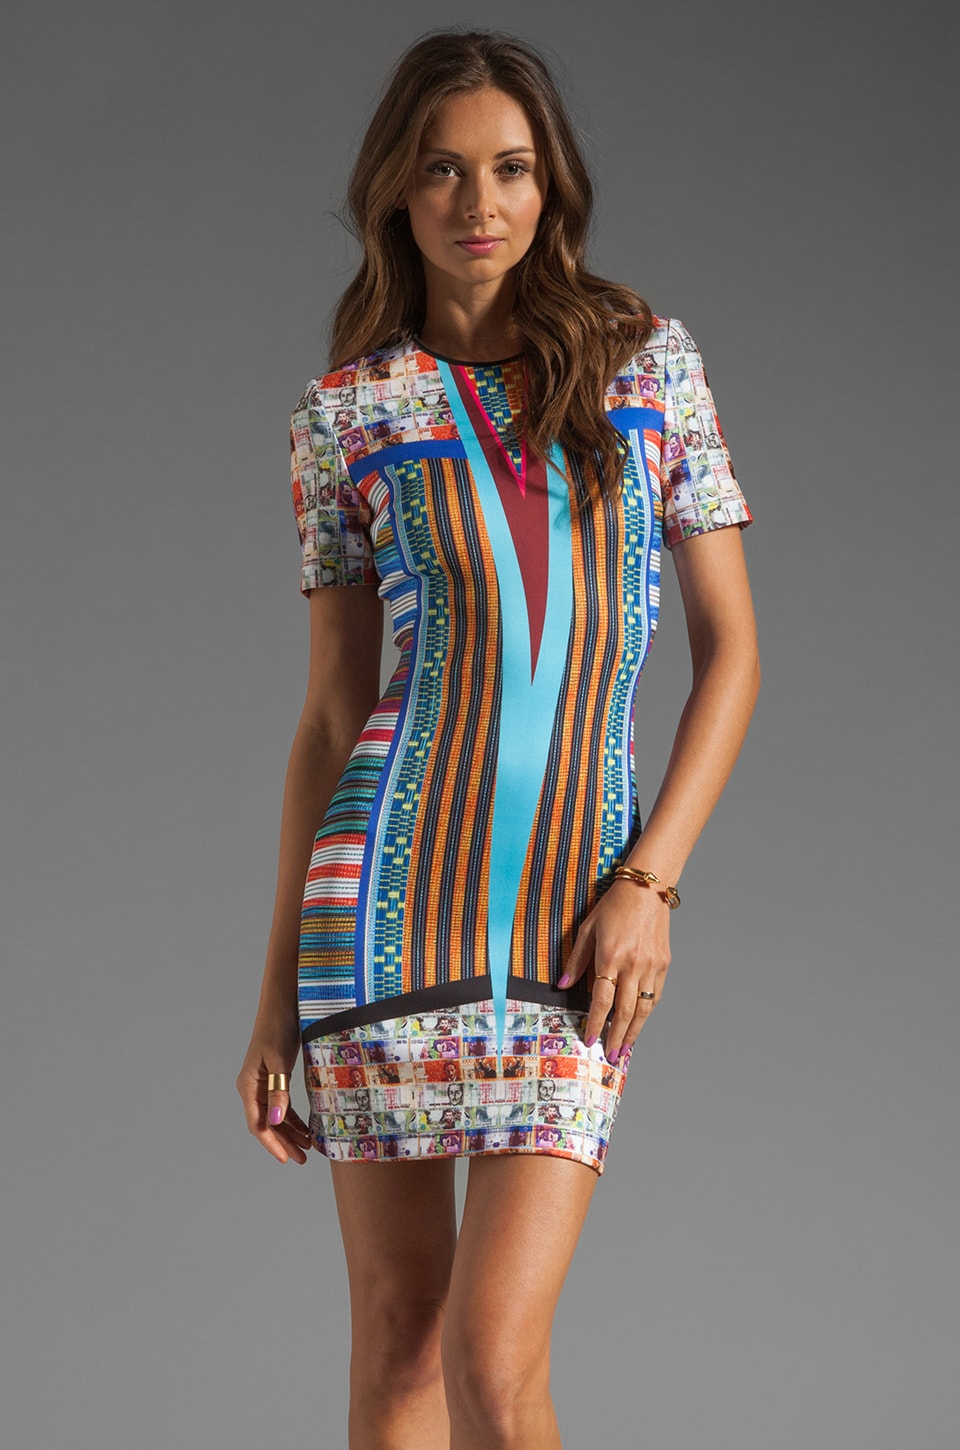 Clover Canyon Woven Pesos Neoprene Dress in Multi